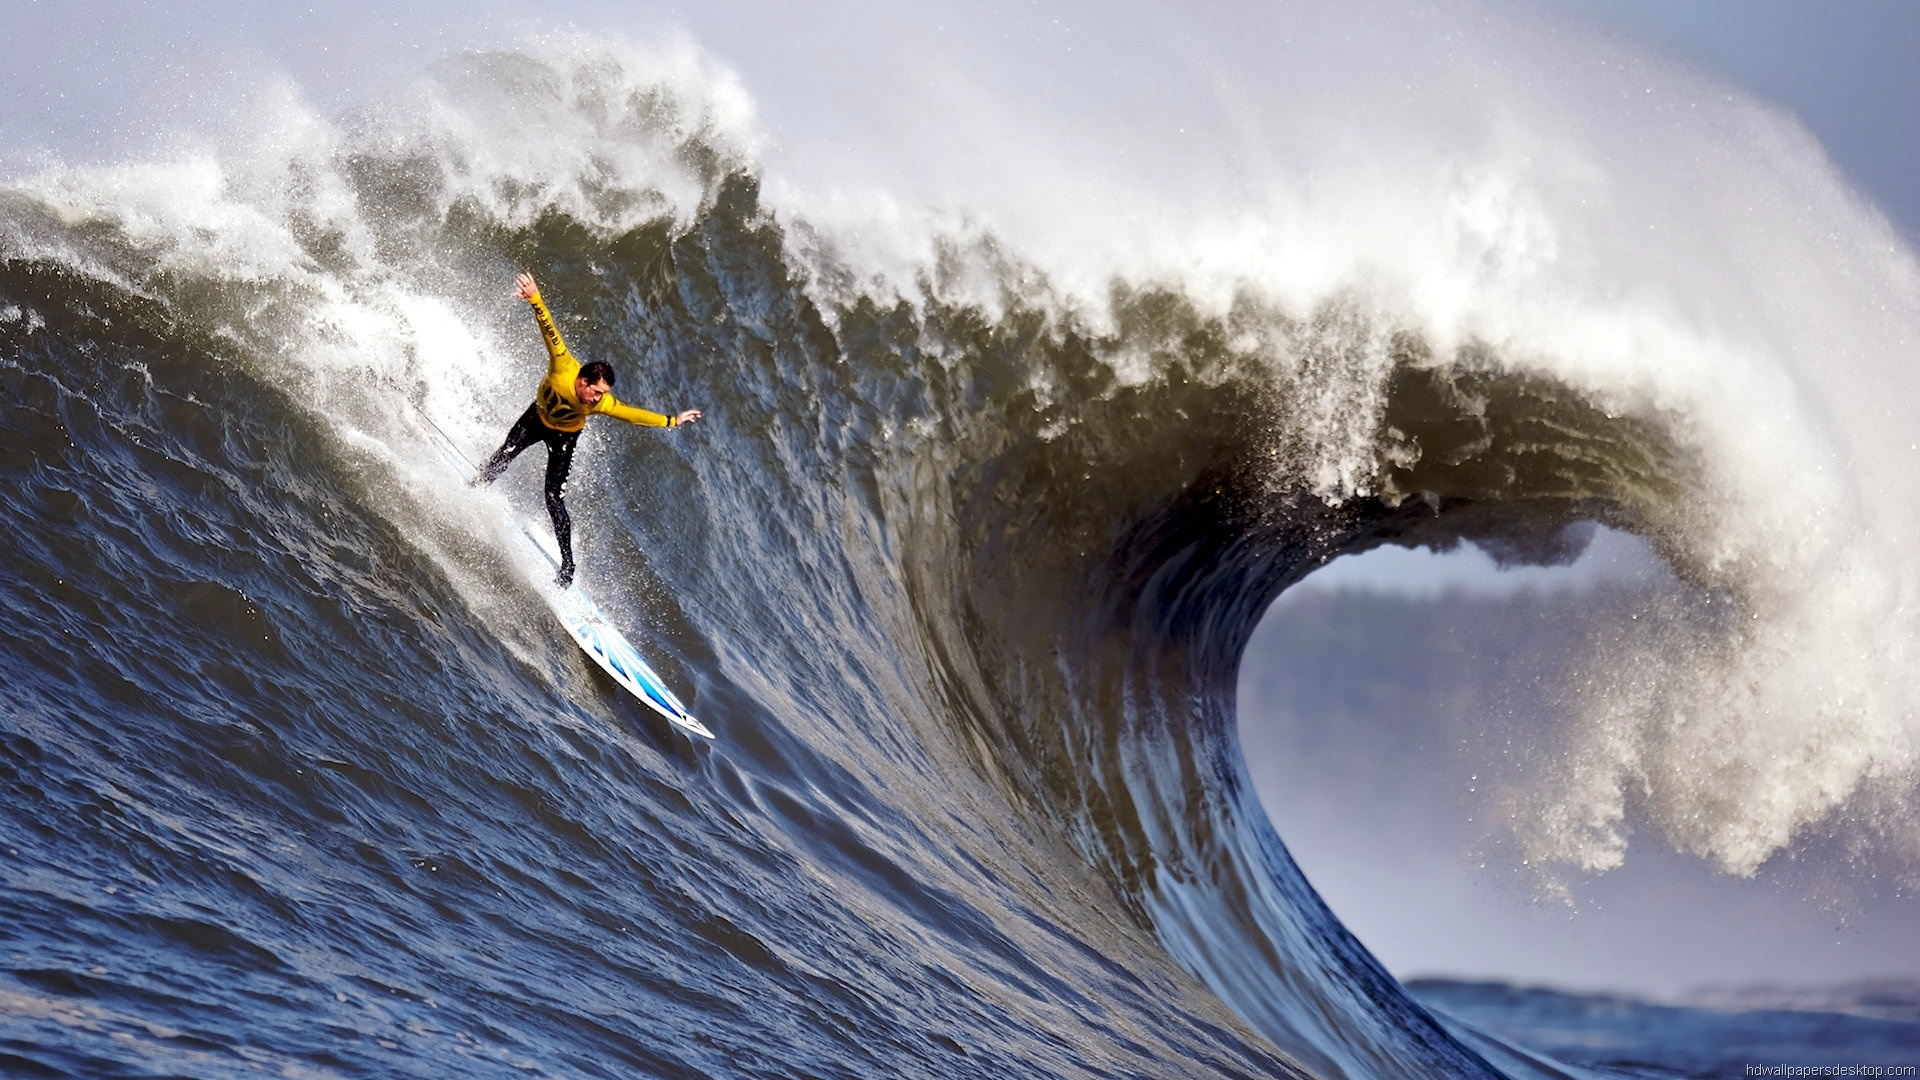 Surfing Wallpaper HD Widescreen Desktop Wallpaper 1920x1080 1920x1080